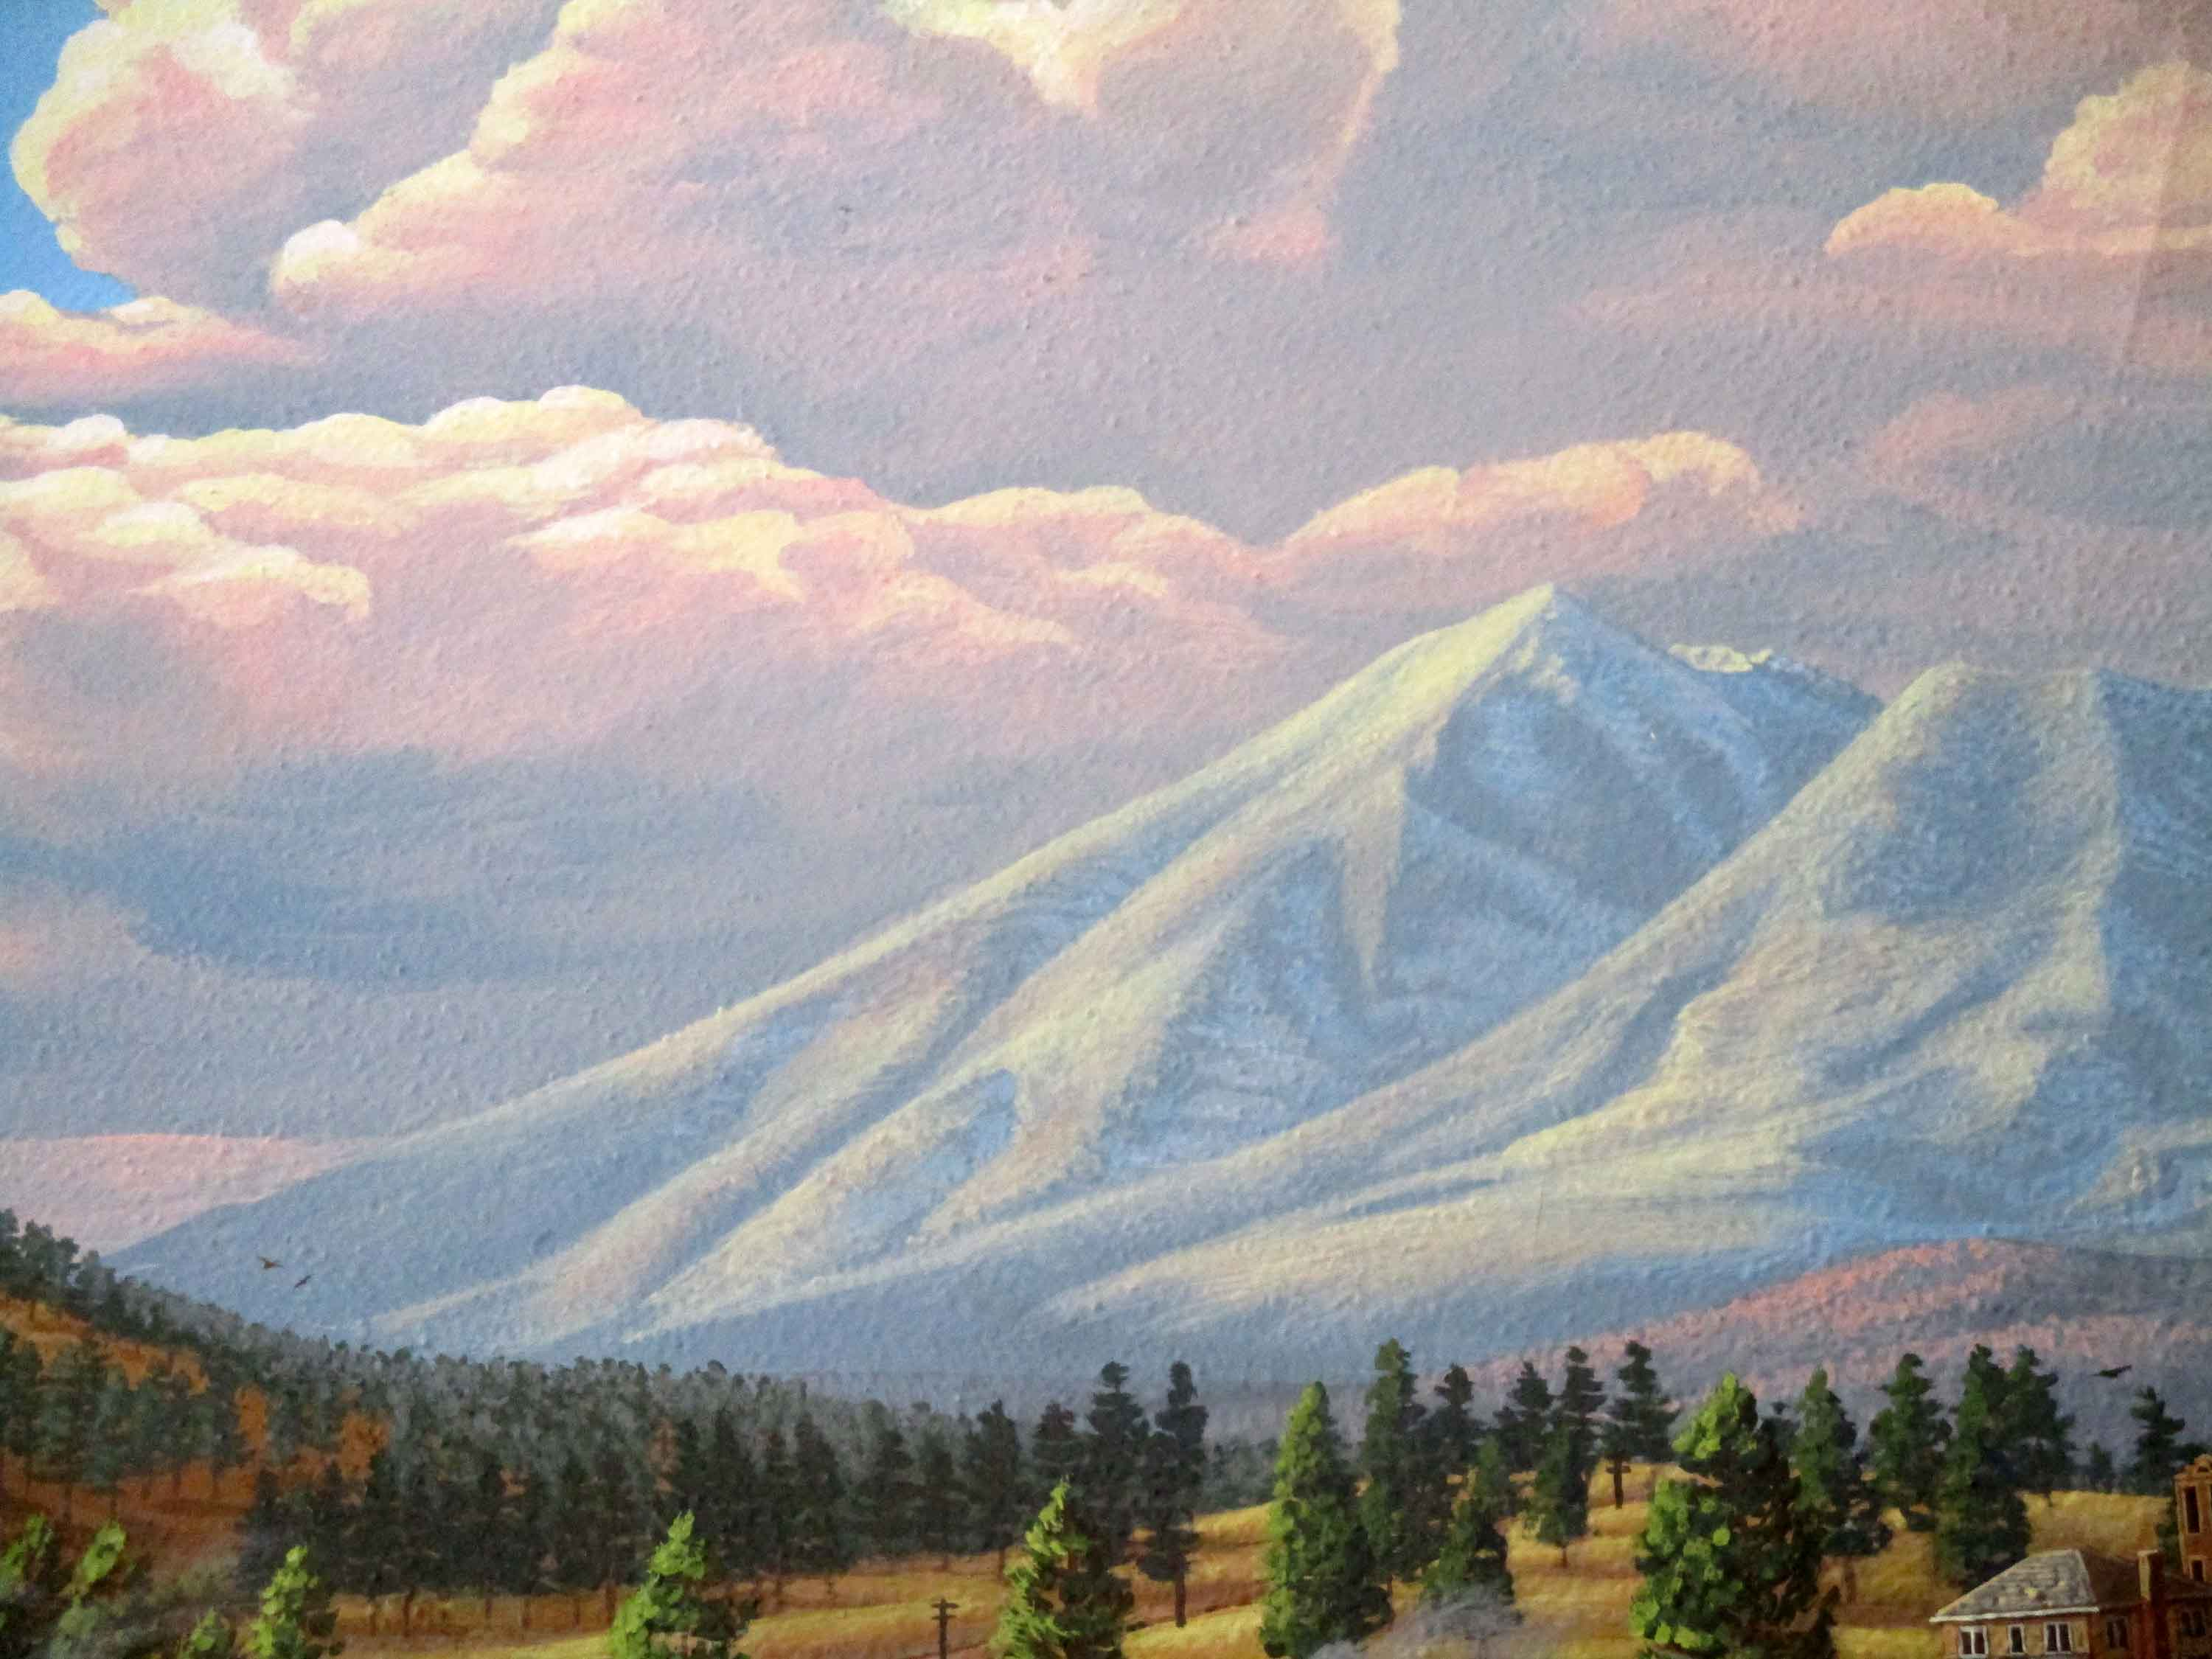 Flagstaff Visitor Center Mural 66